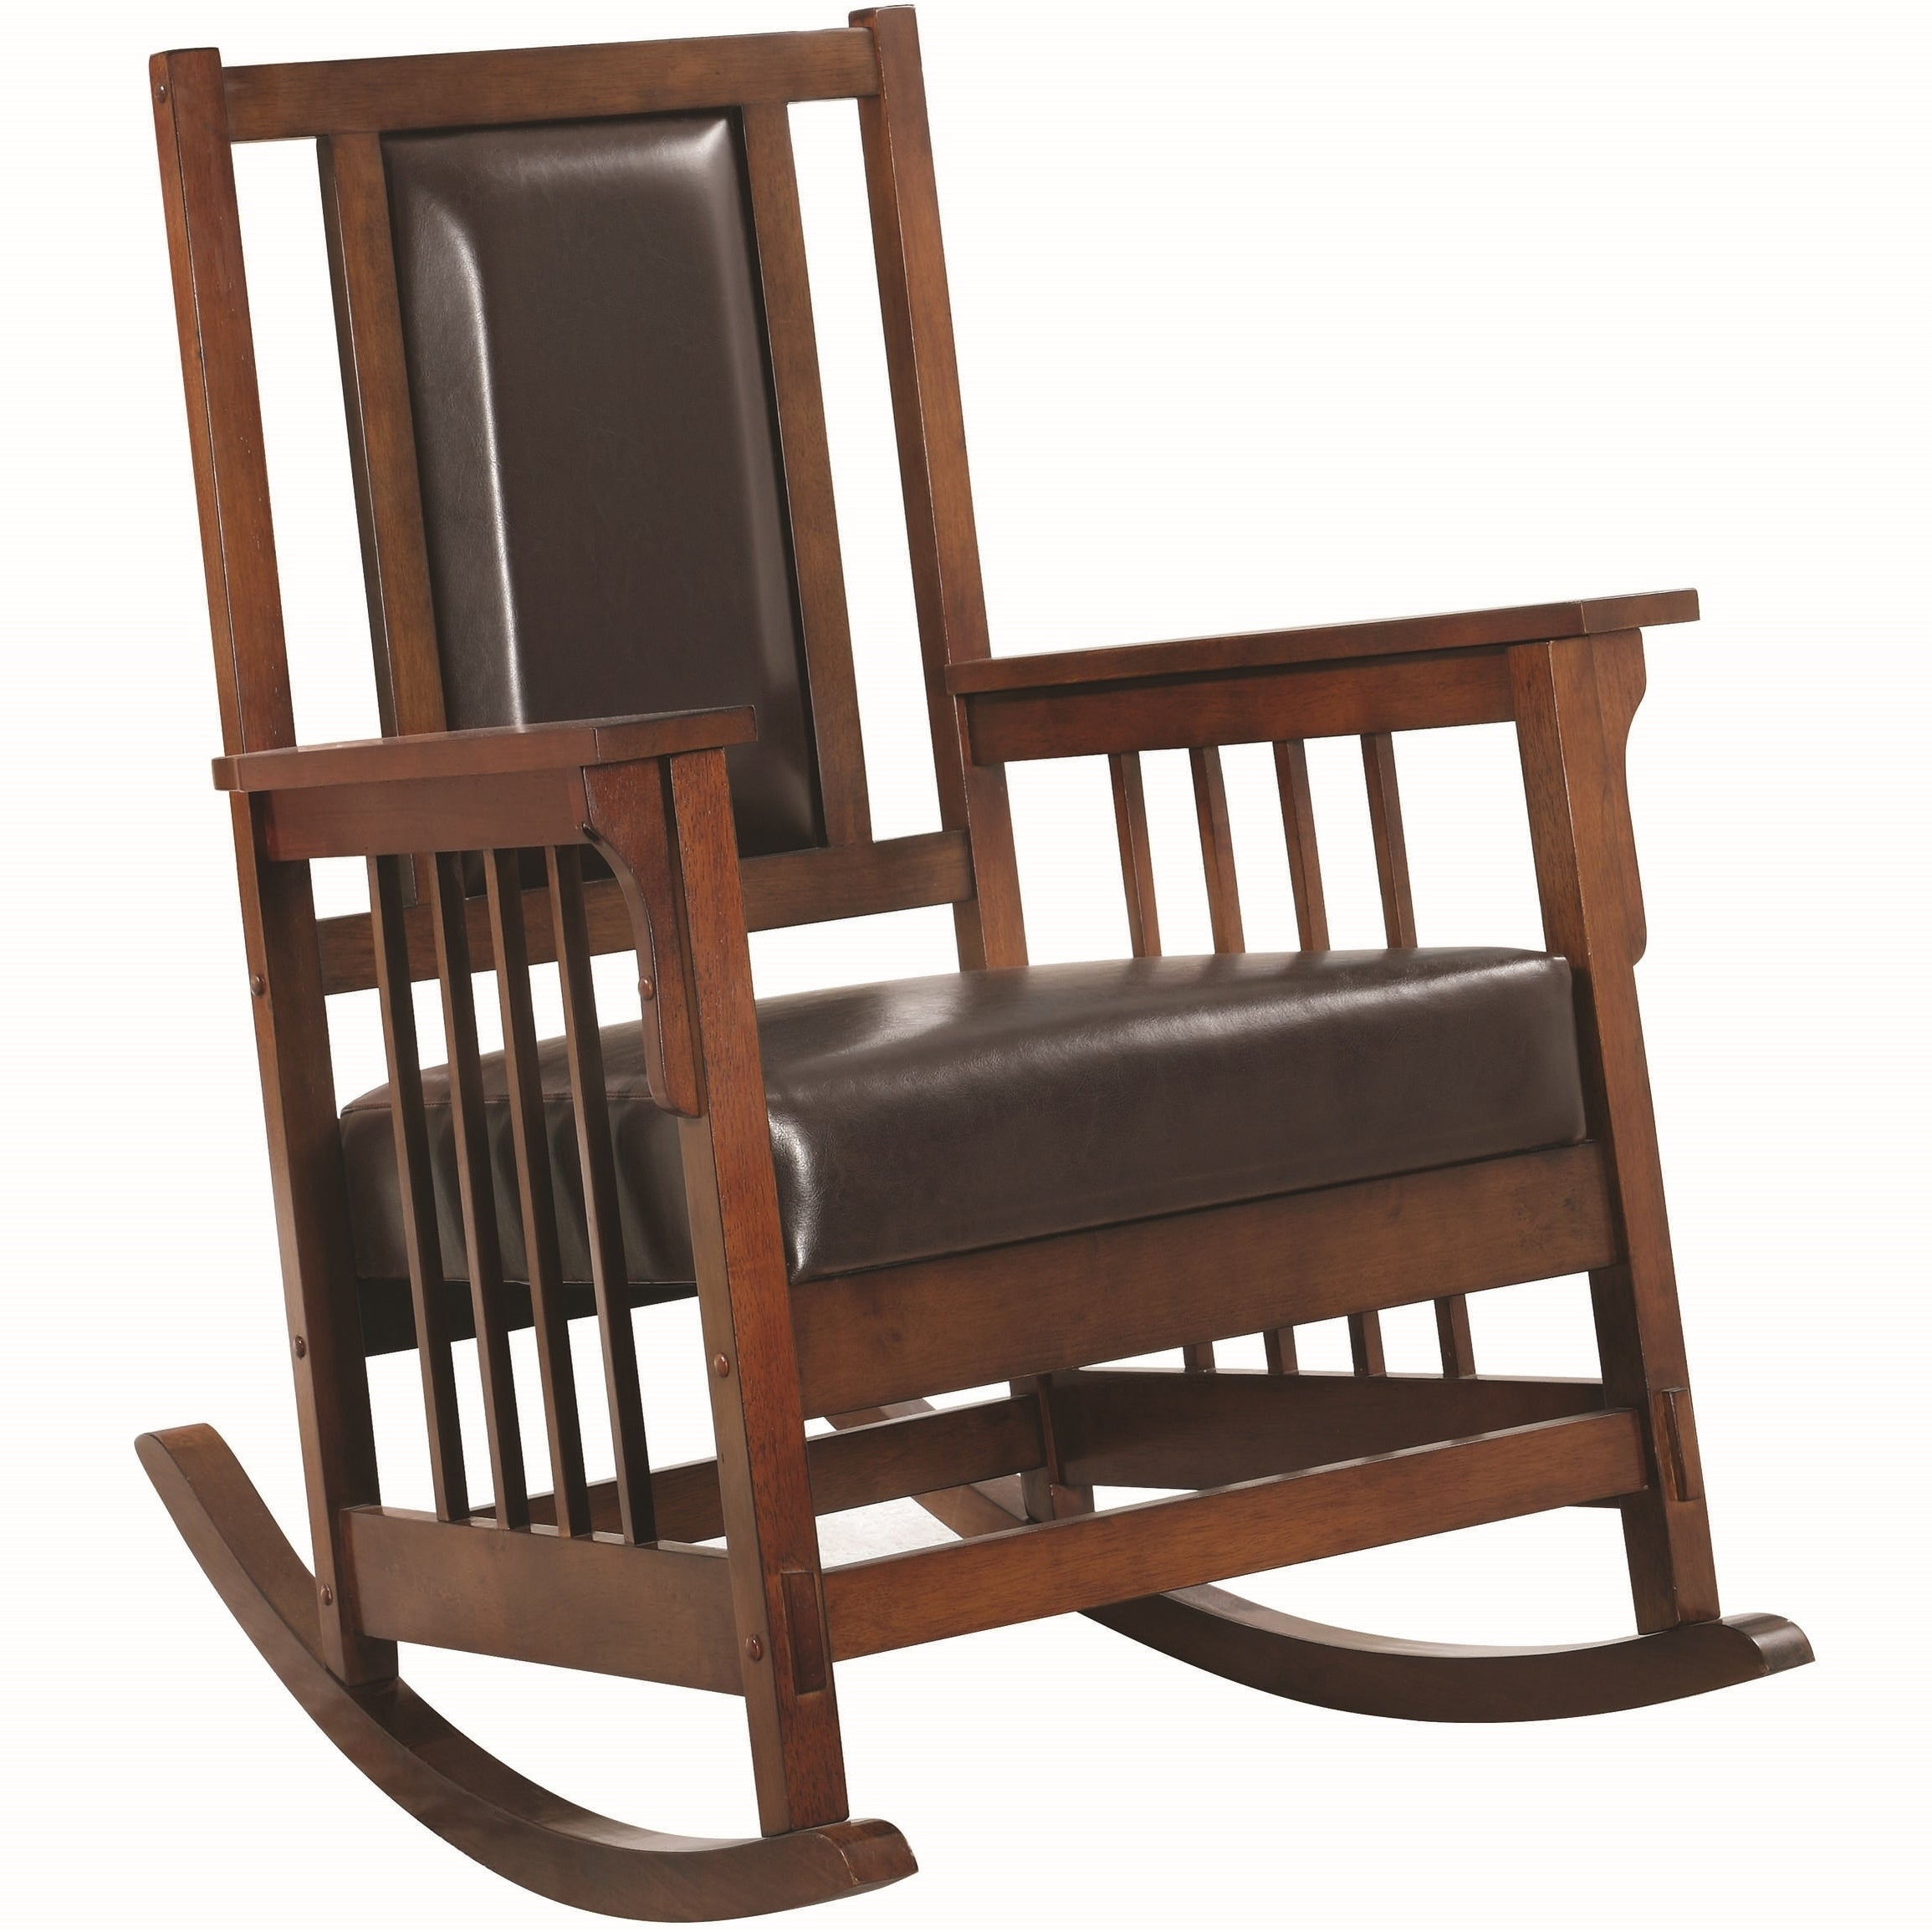 Inspiration about Mission Design Wood Rocking Chair With Brown Leather Seat Intended For Mission Design Wood Rocking Chairs With Brown Leather Seat (#2 of 20)